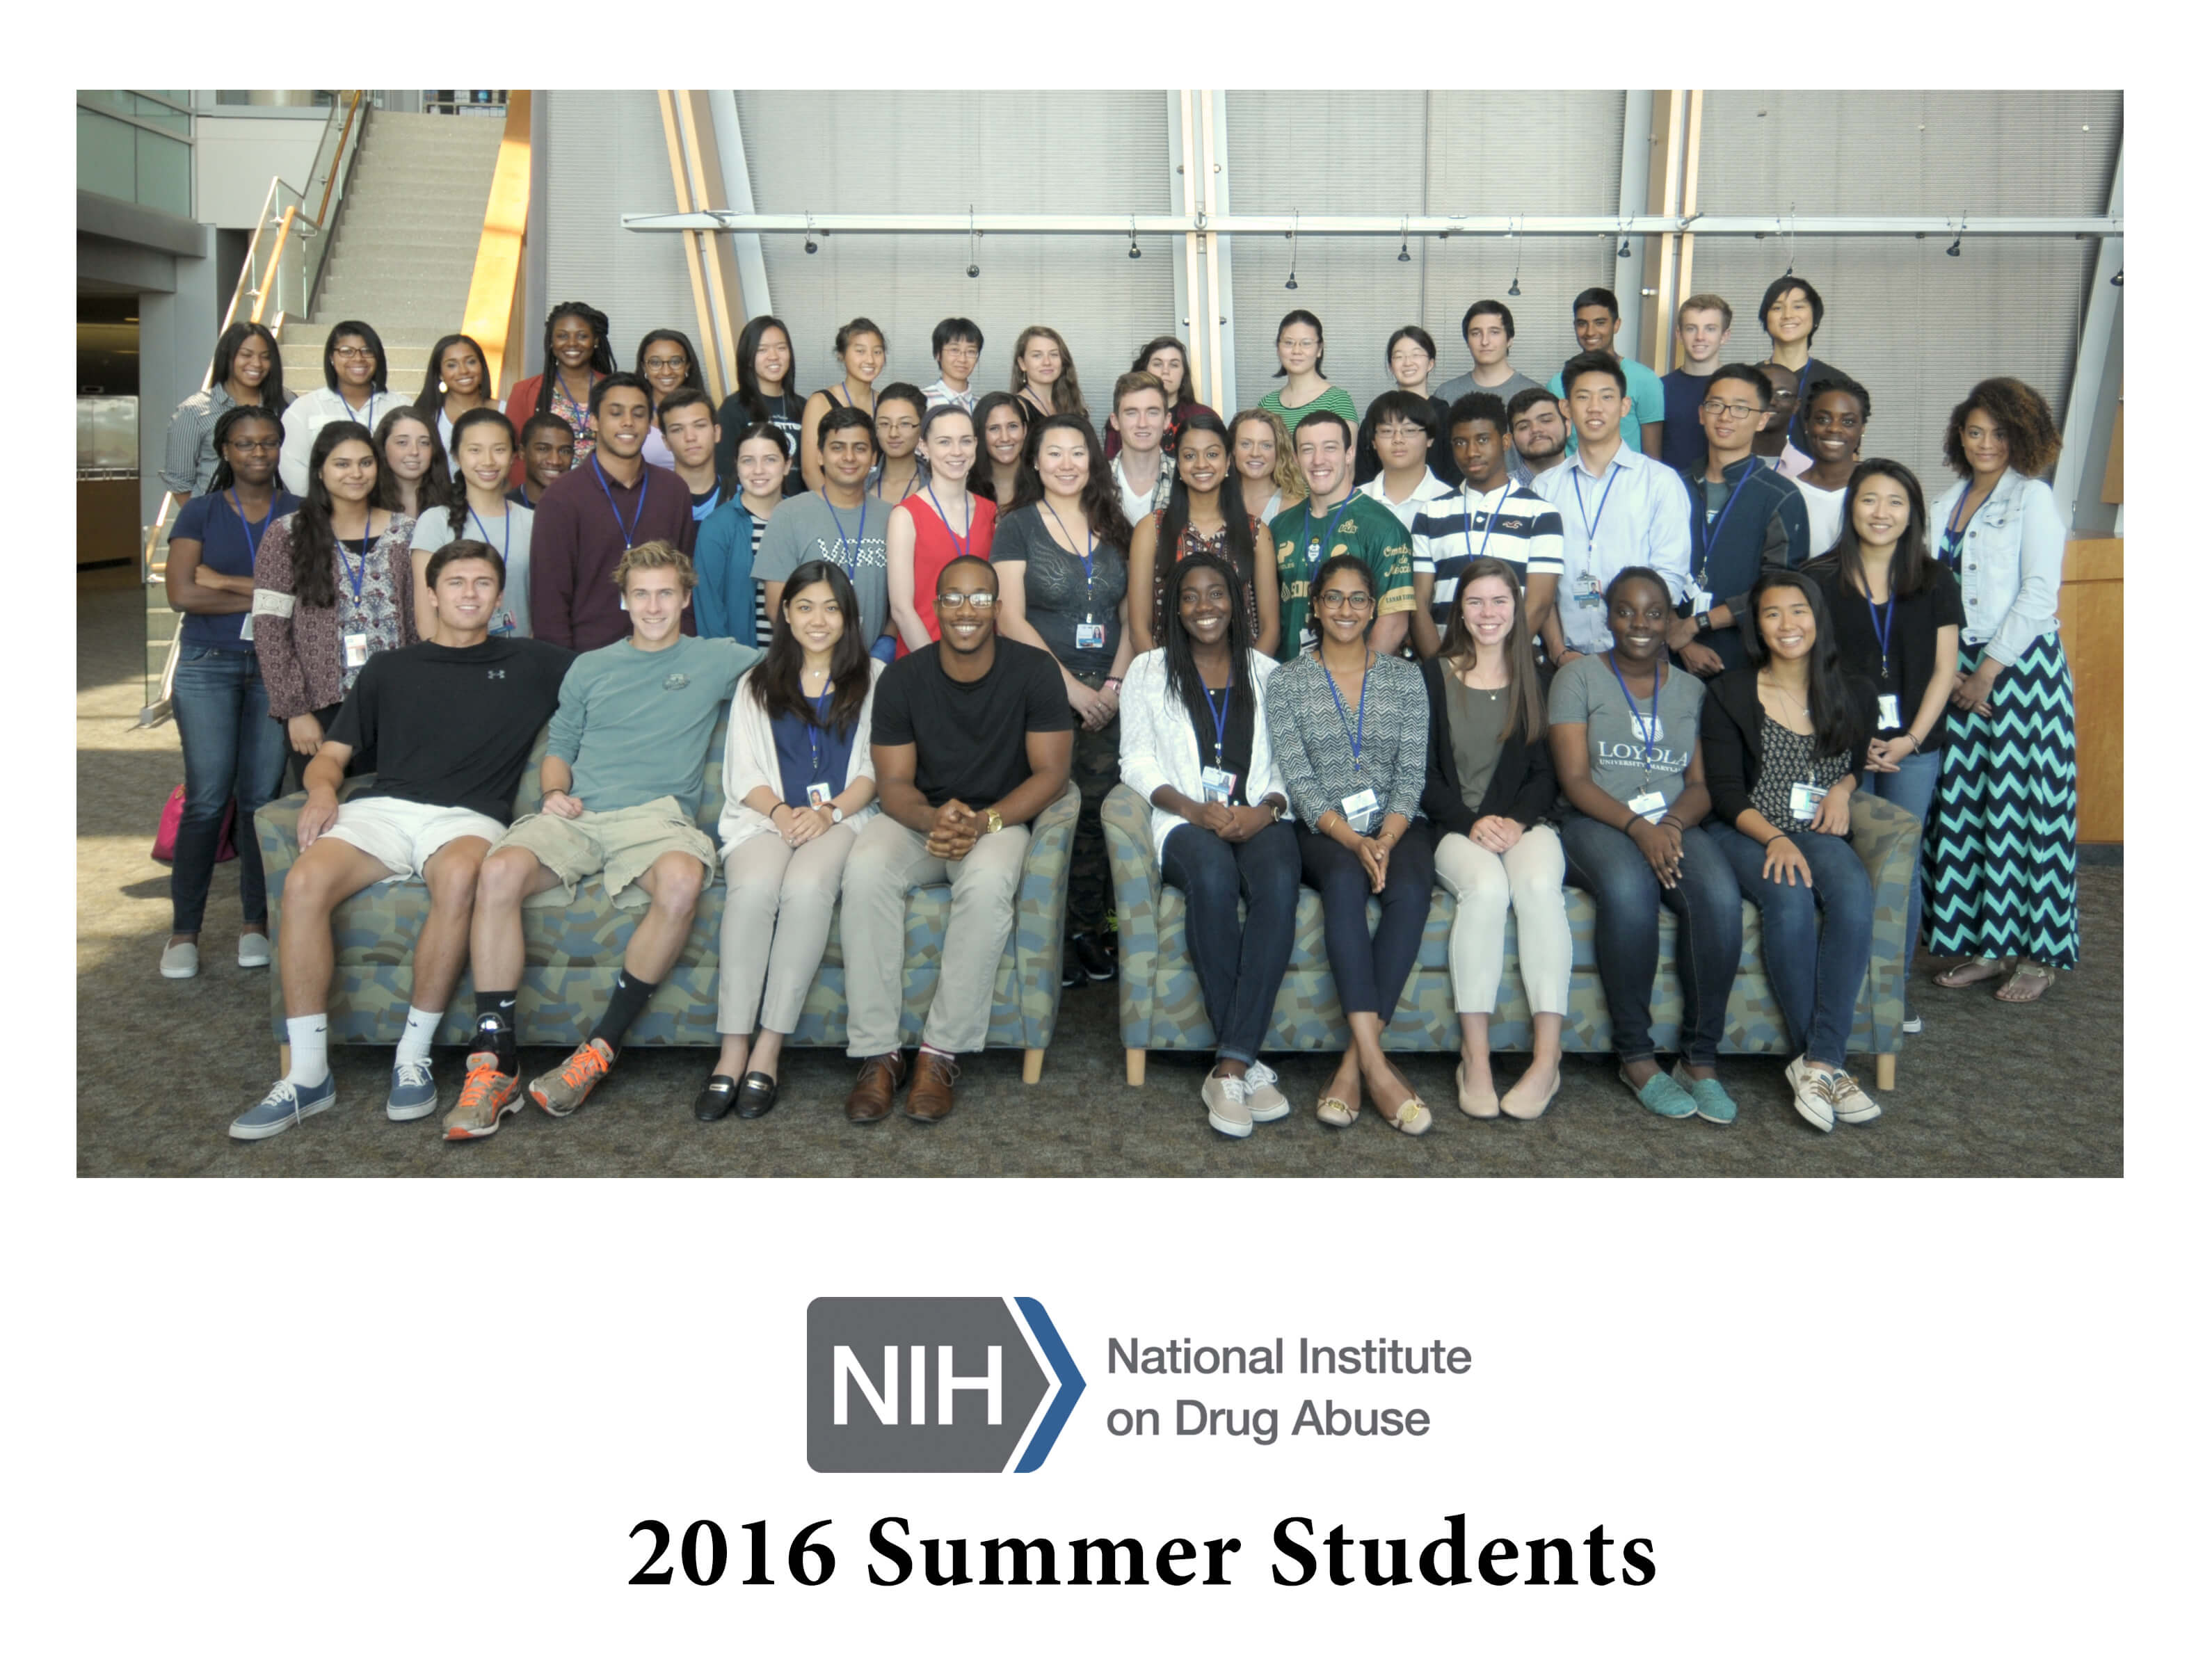 NIDA 2016 Summer Students group photo